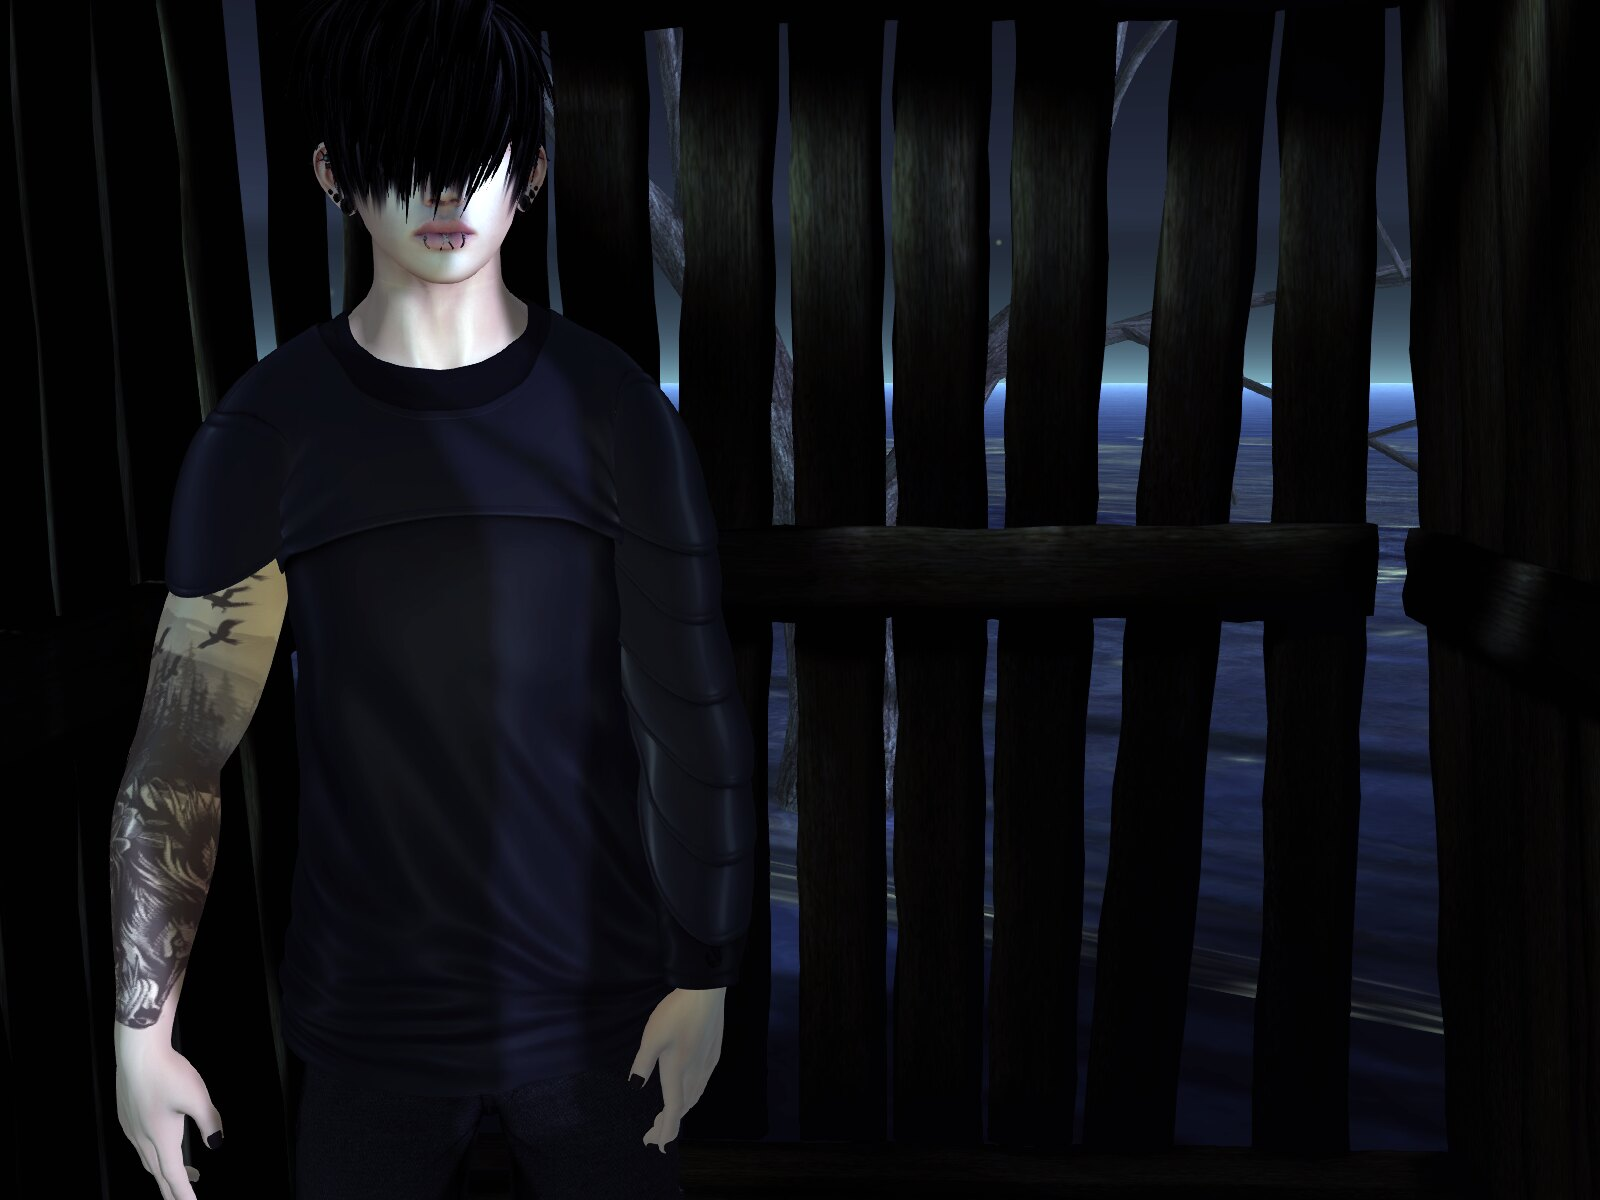 Meshmerized - Armored Shirt @ The Mens Jail